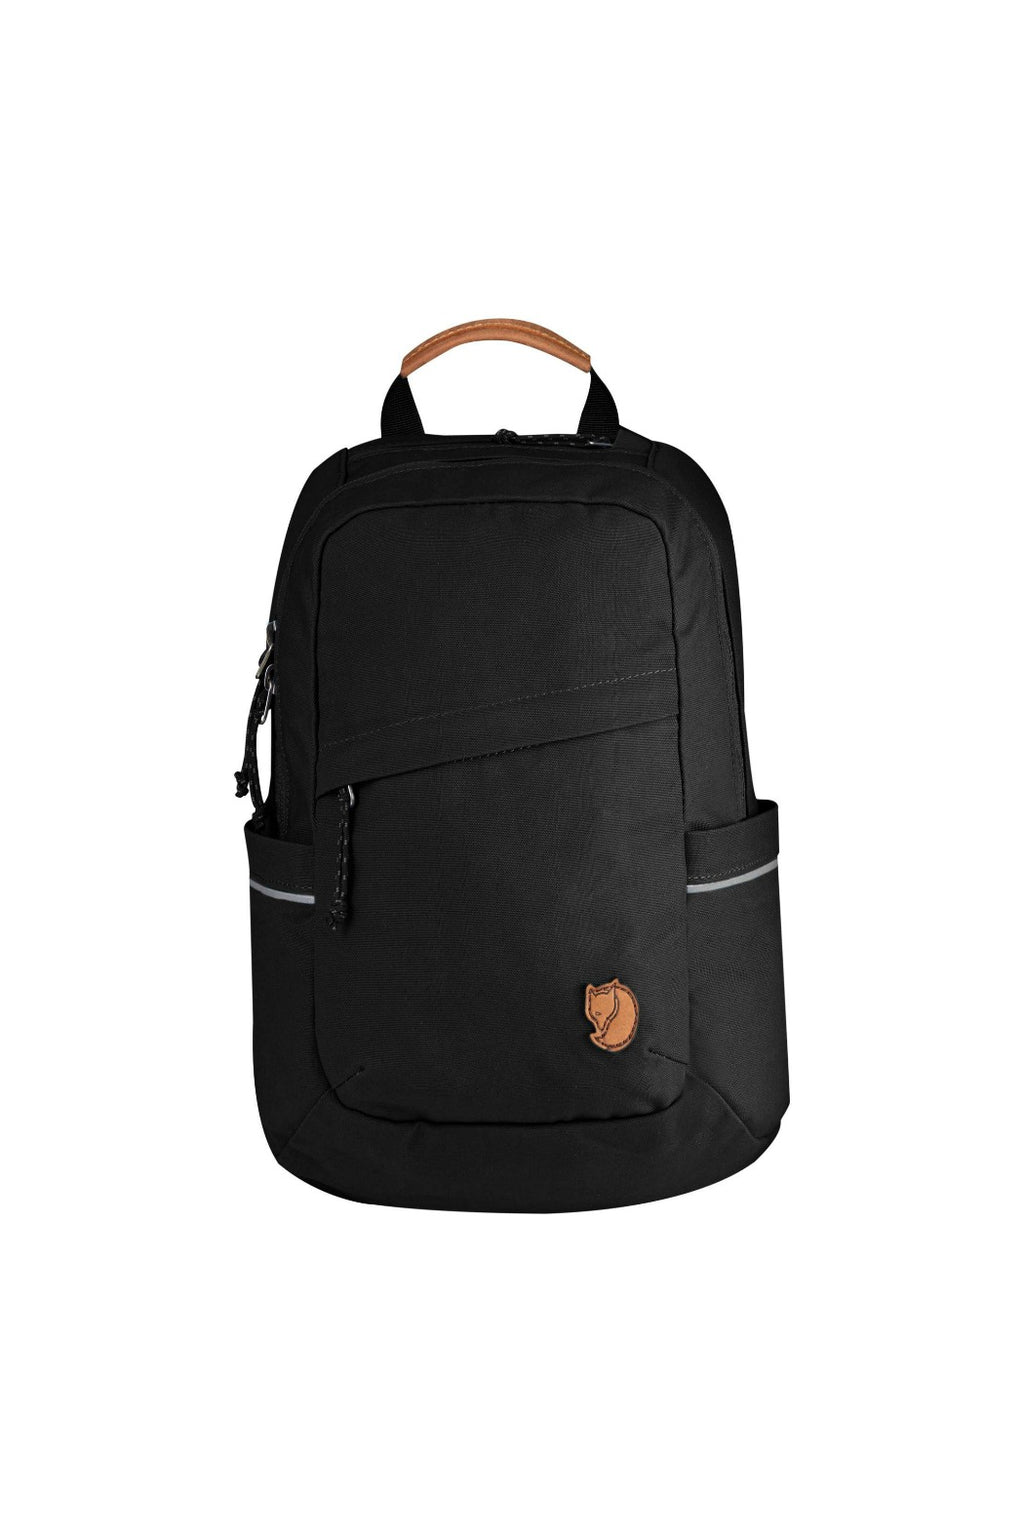 Fjällräven Raven Mini Backpack - Black